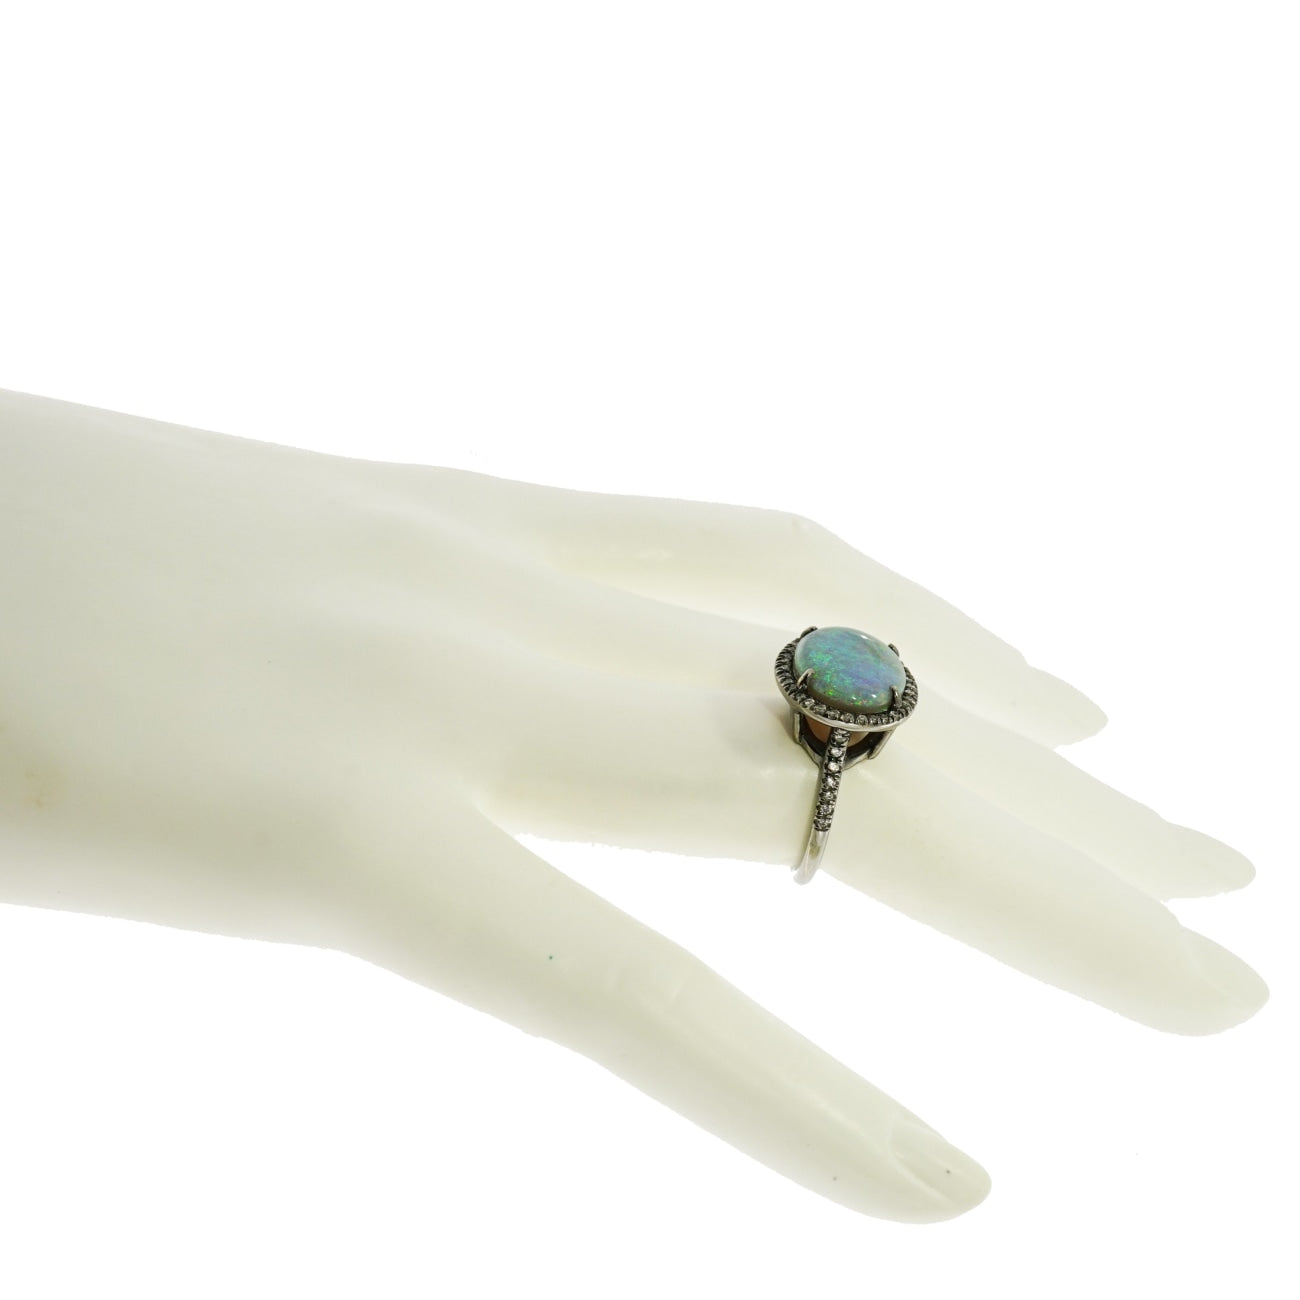 Lauren K Jewelry - Oval Blue Opal & Diamond Ring | Manfredi Jewels